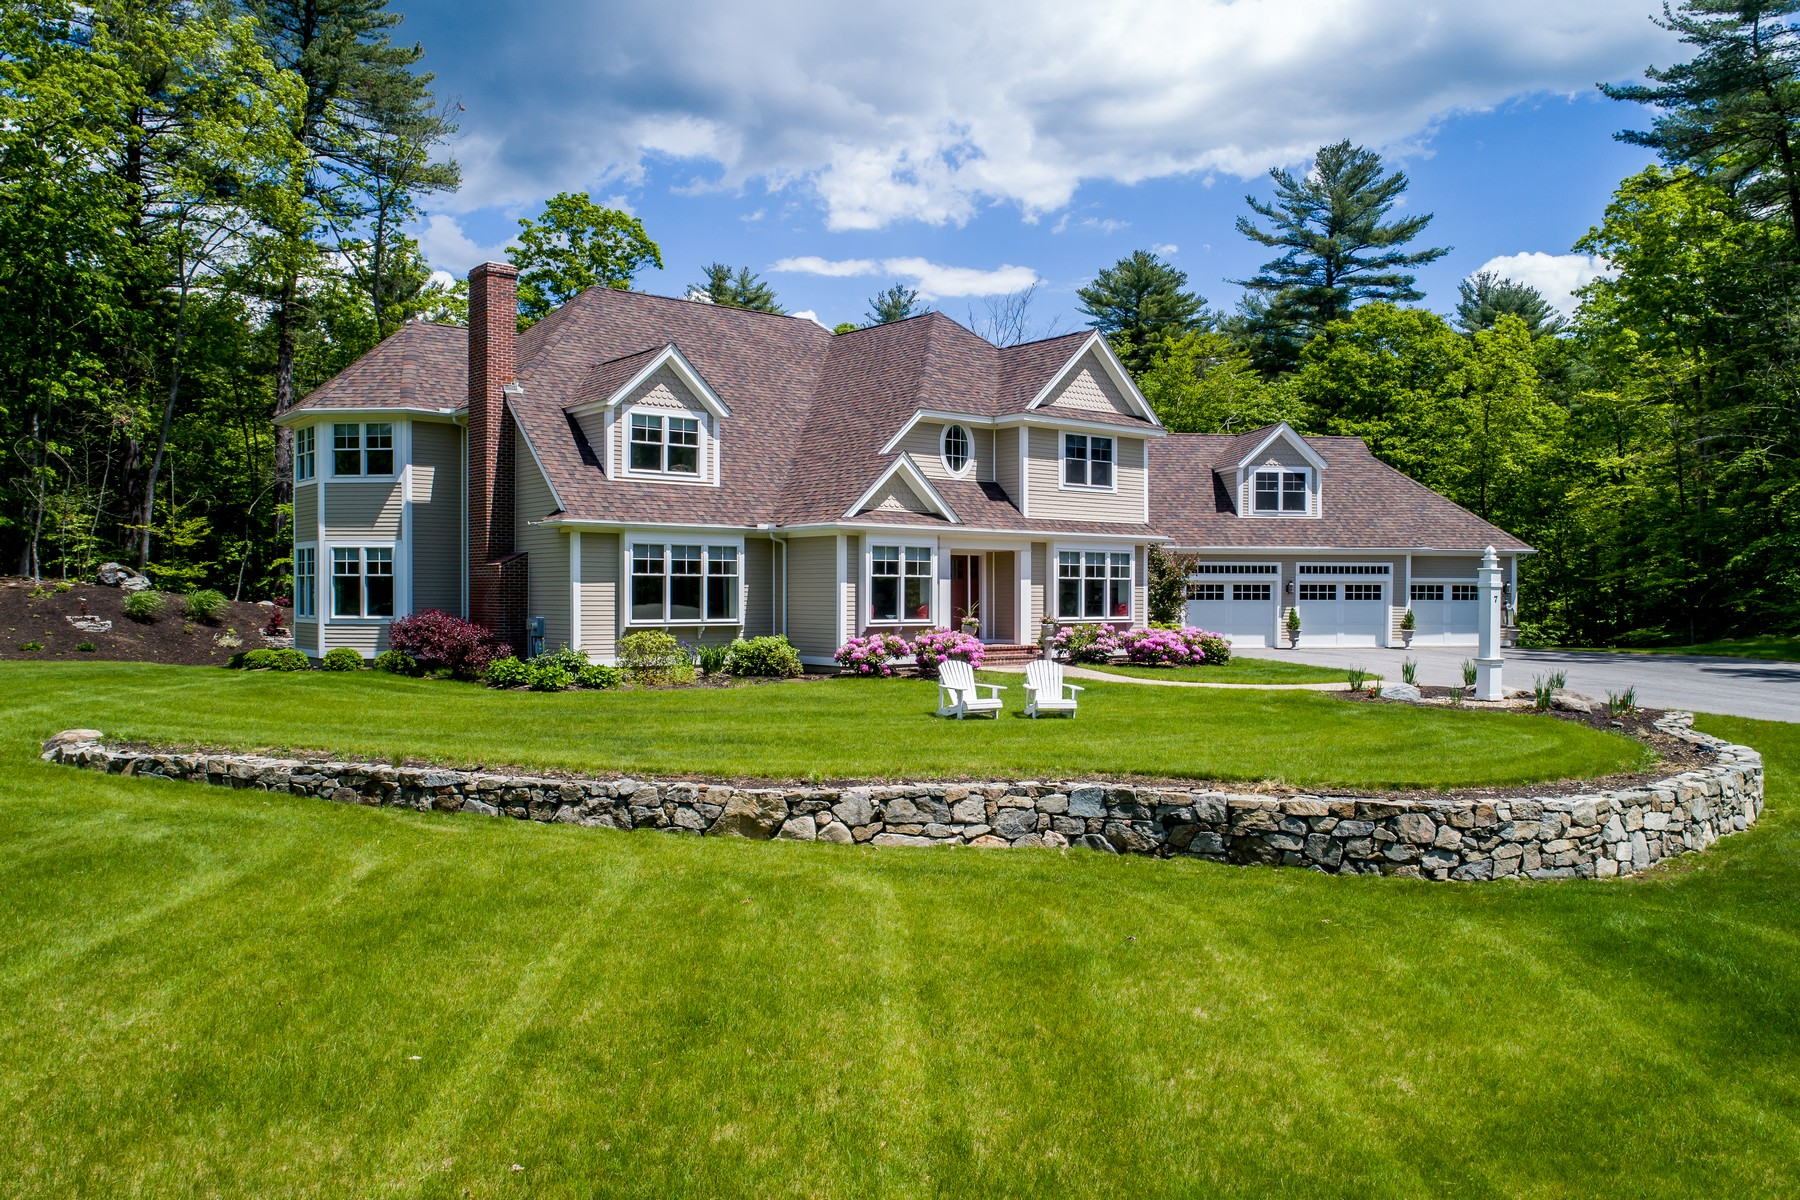 Single Family Home for Sale at Modern Living in Country Setting 7 Sagamore Lane Boxford, Massachusetts 01921 United States